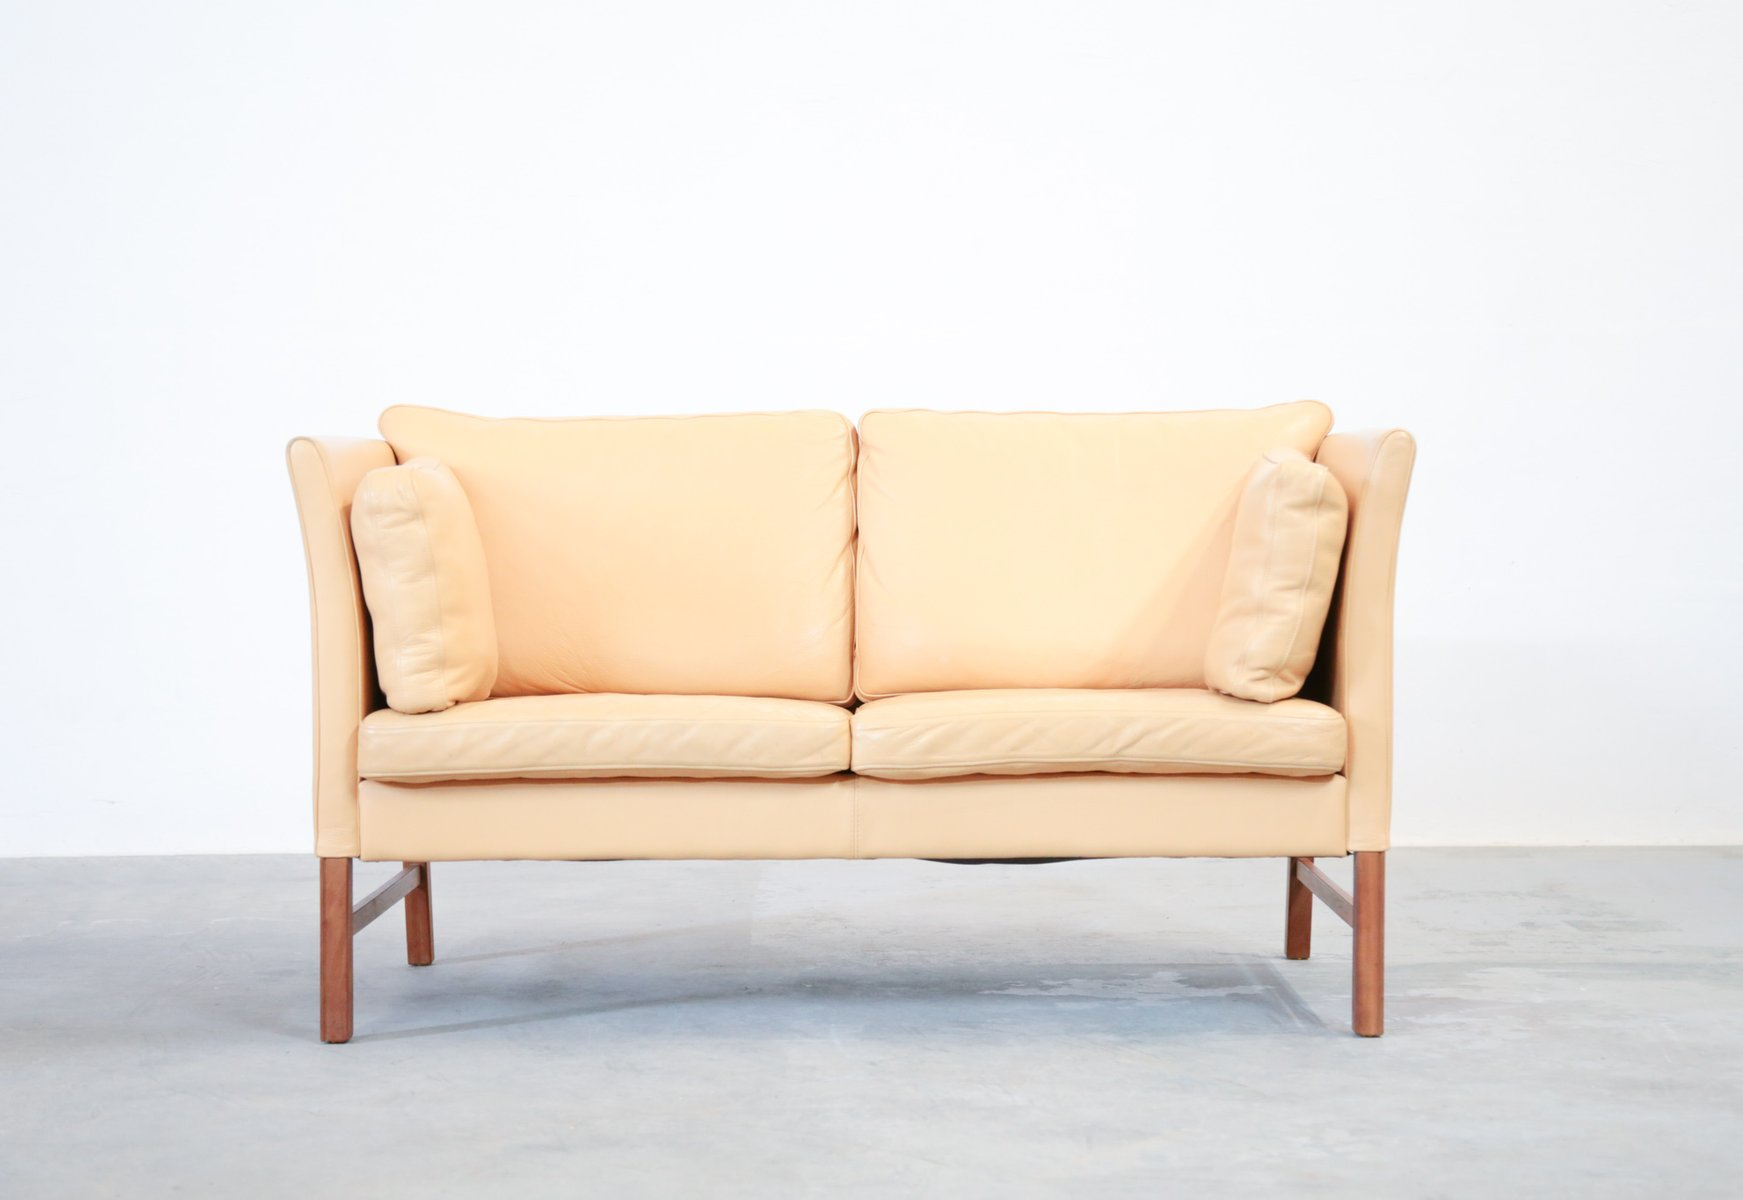 Danish beige leather 2 seater sofa 1970s for sale at pamono for Beige leather sectional sofa sale